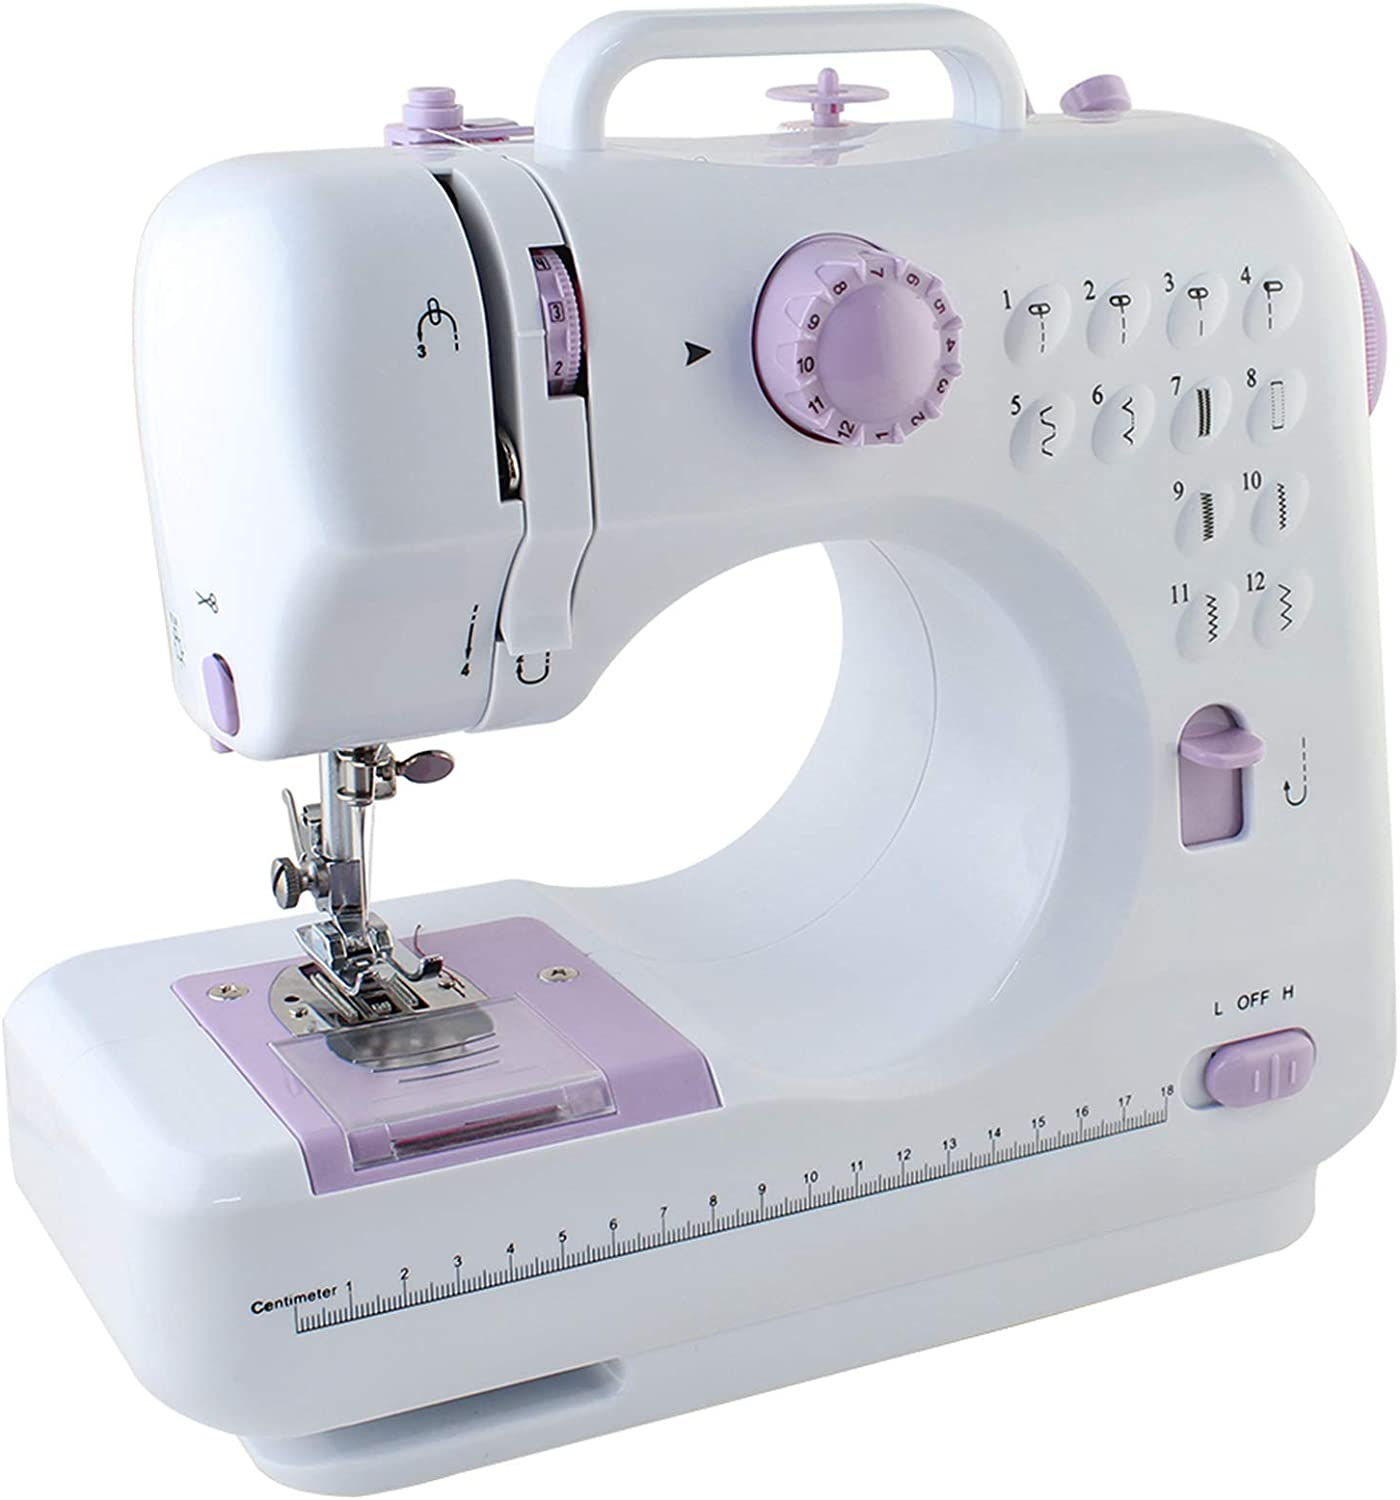 Foot Pedal Small Sewing Machine for Beginners,12 Built-in Stitches